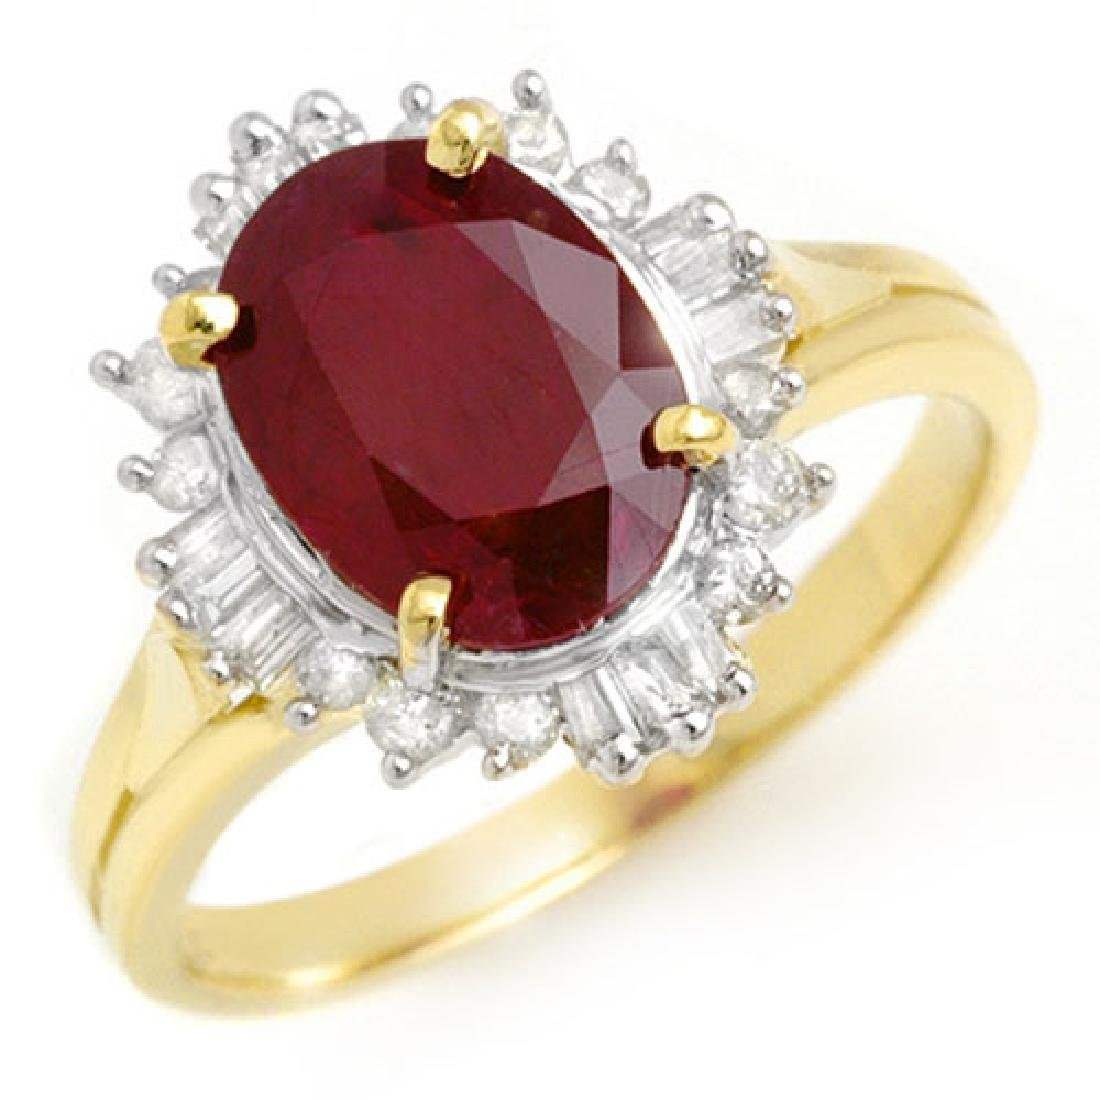 2.55 CTW Ruby & Diamond Ring 10K Yellow Gold